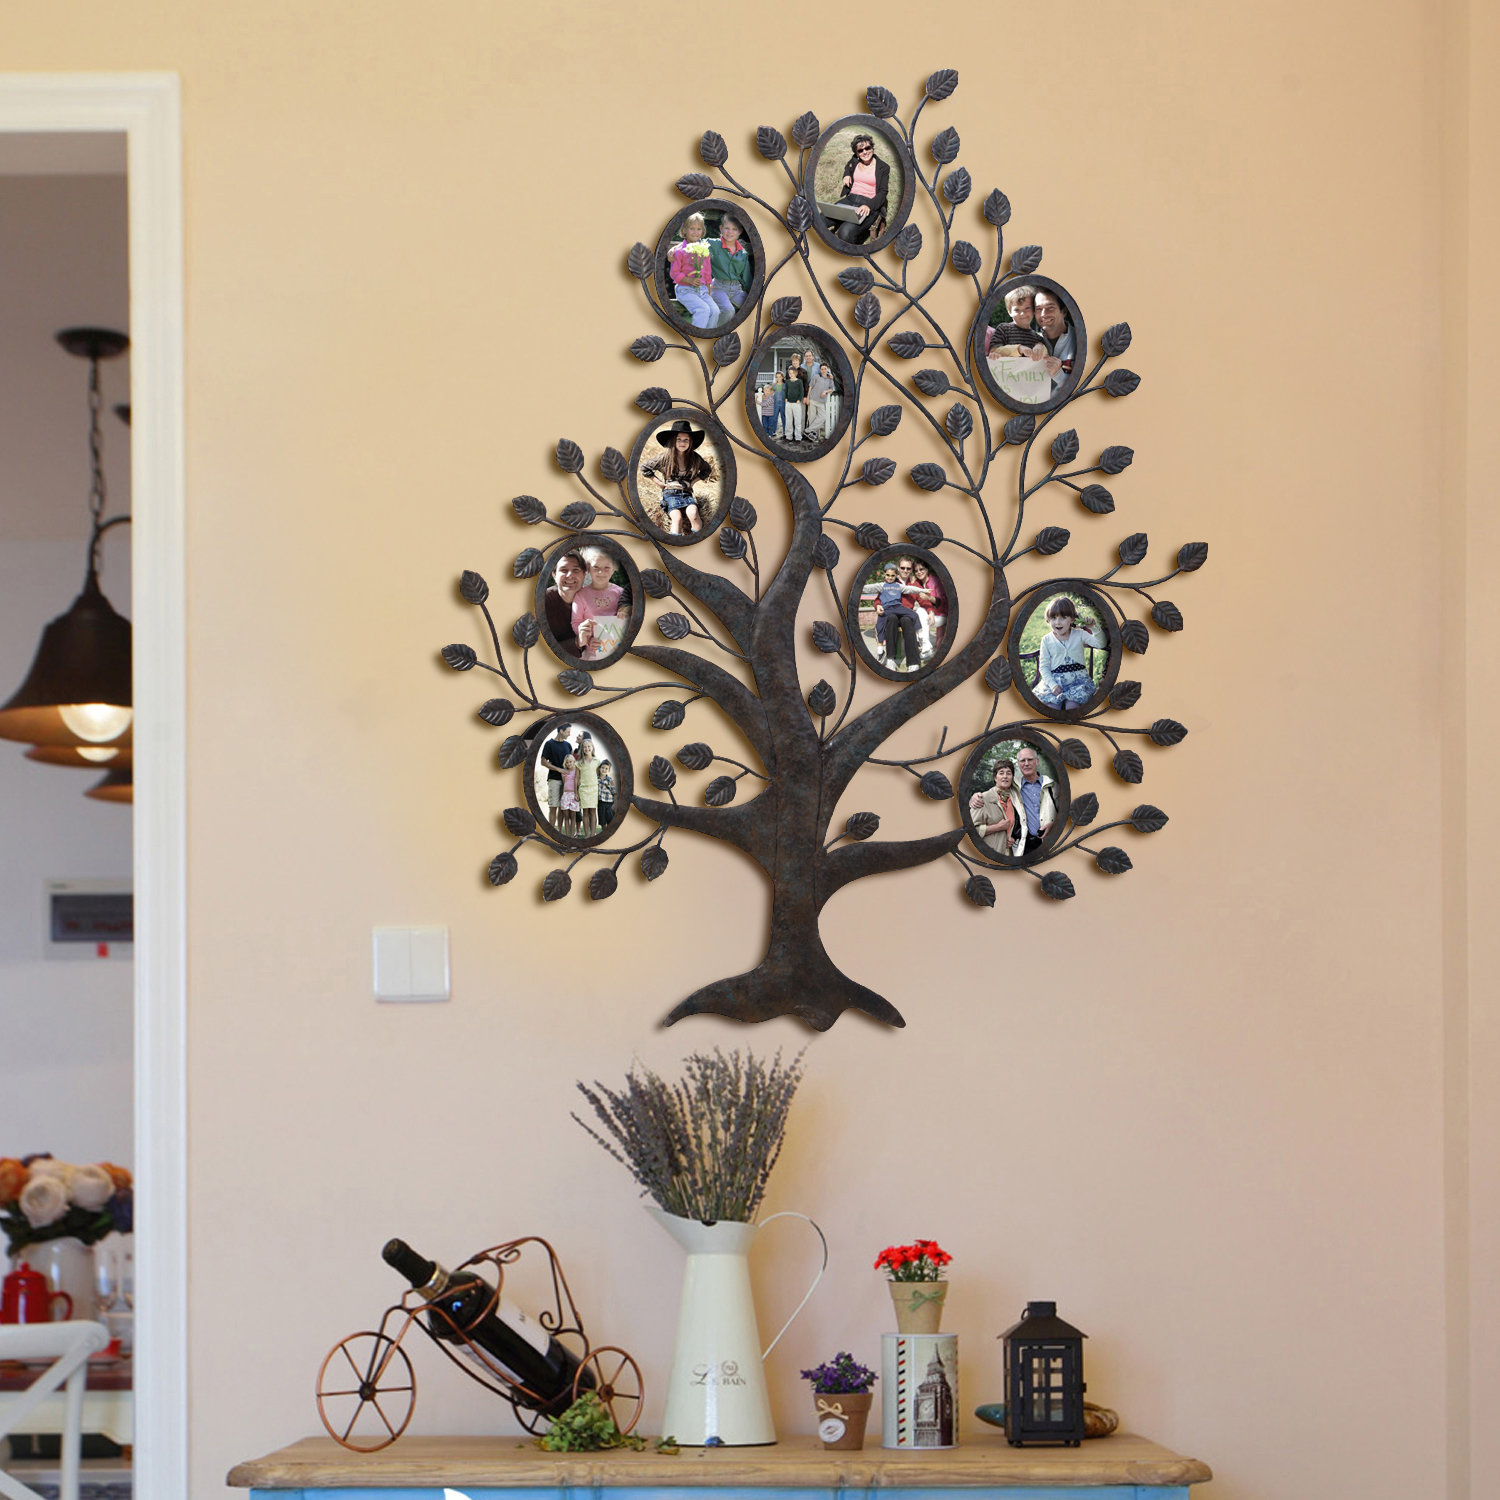 Tree Of Life Wall Decor By Red Barrel Studio Inside Most Recent Red Barrel Studio Medlock 10 Opening Decorative Family Tree Wall (View 4 of 20)